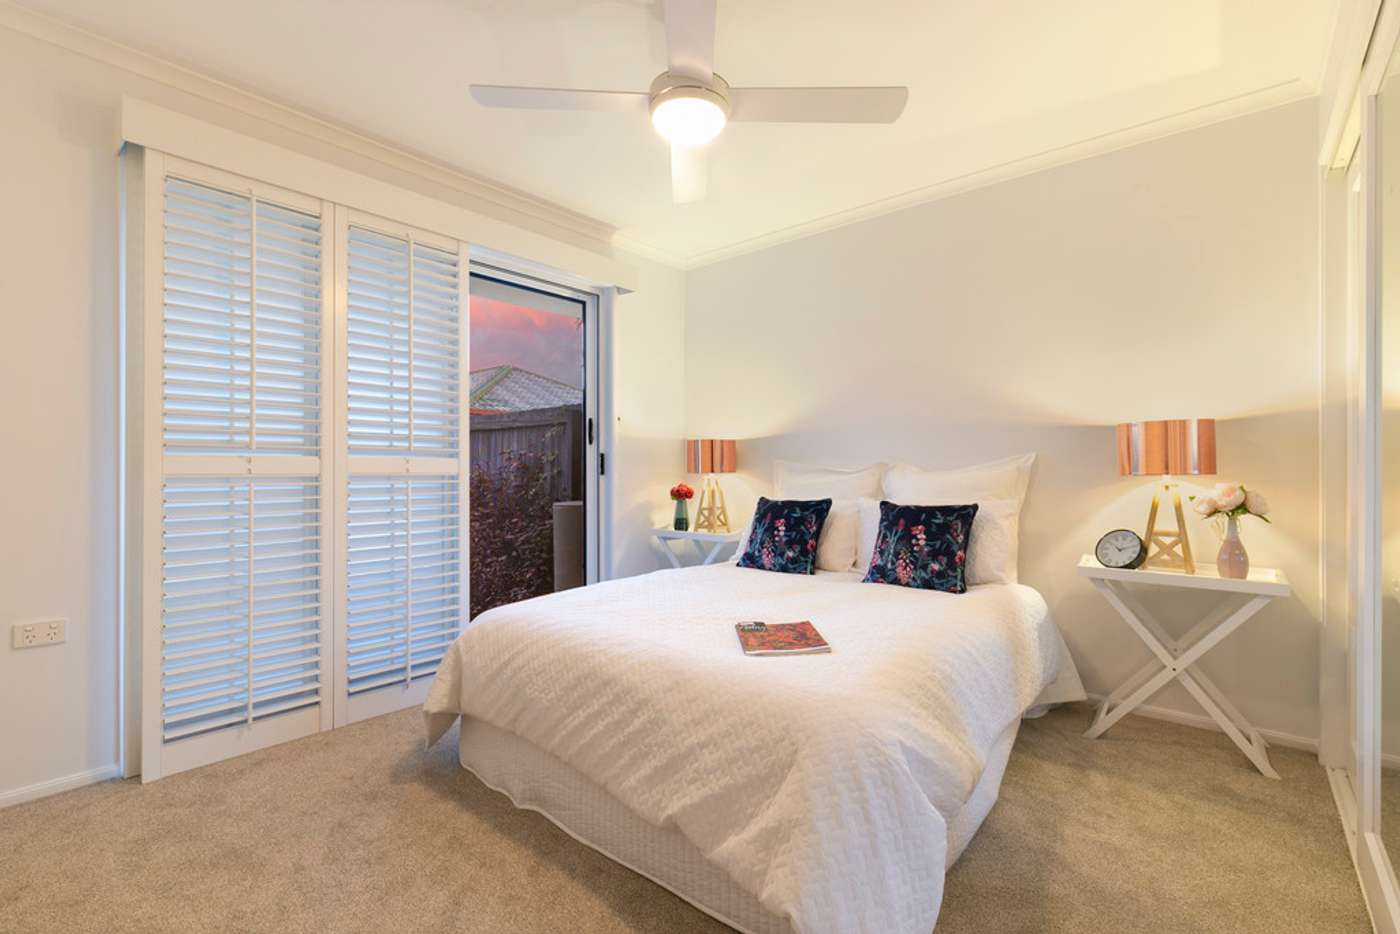 Fifth view of Homely house listing, 13/24 GLENEAGLES AVENUE, Cornubia QLD 4130